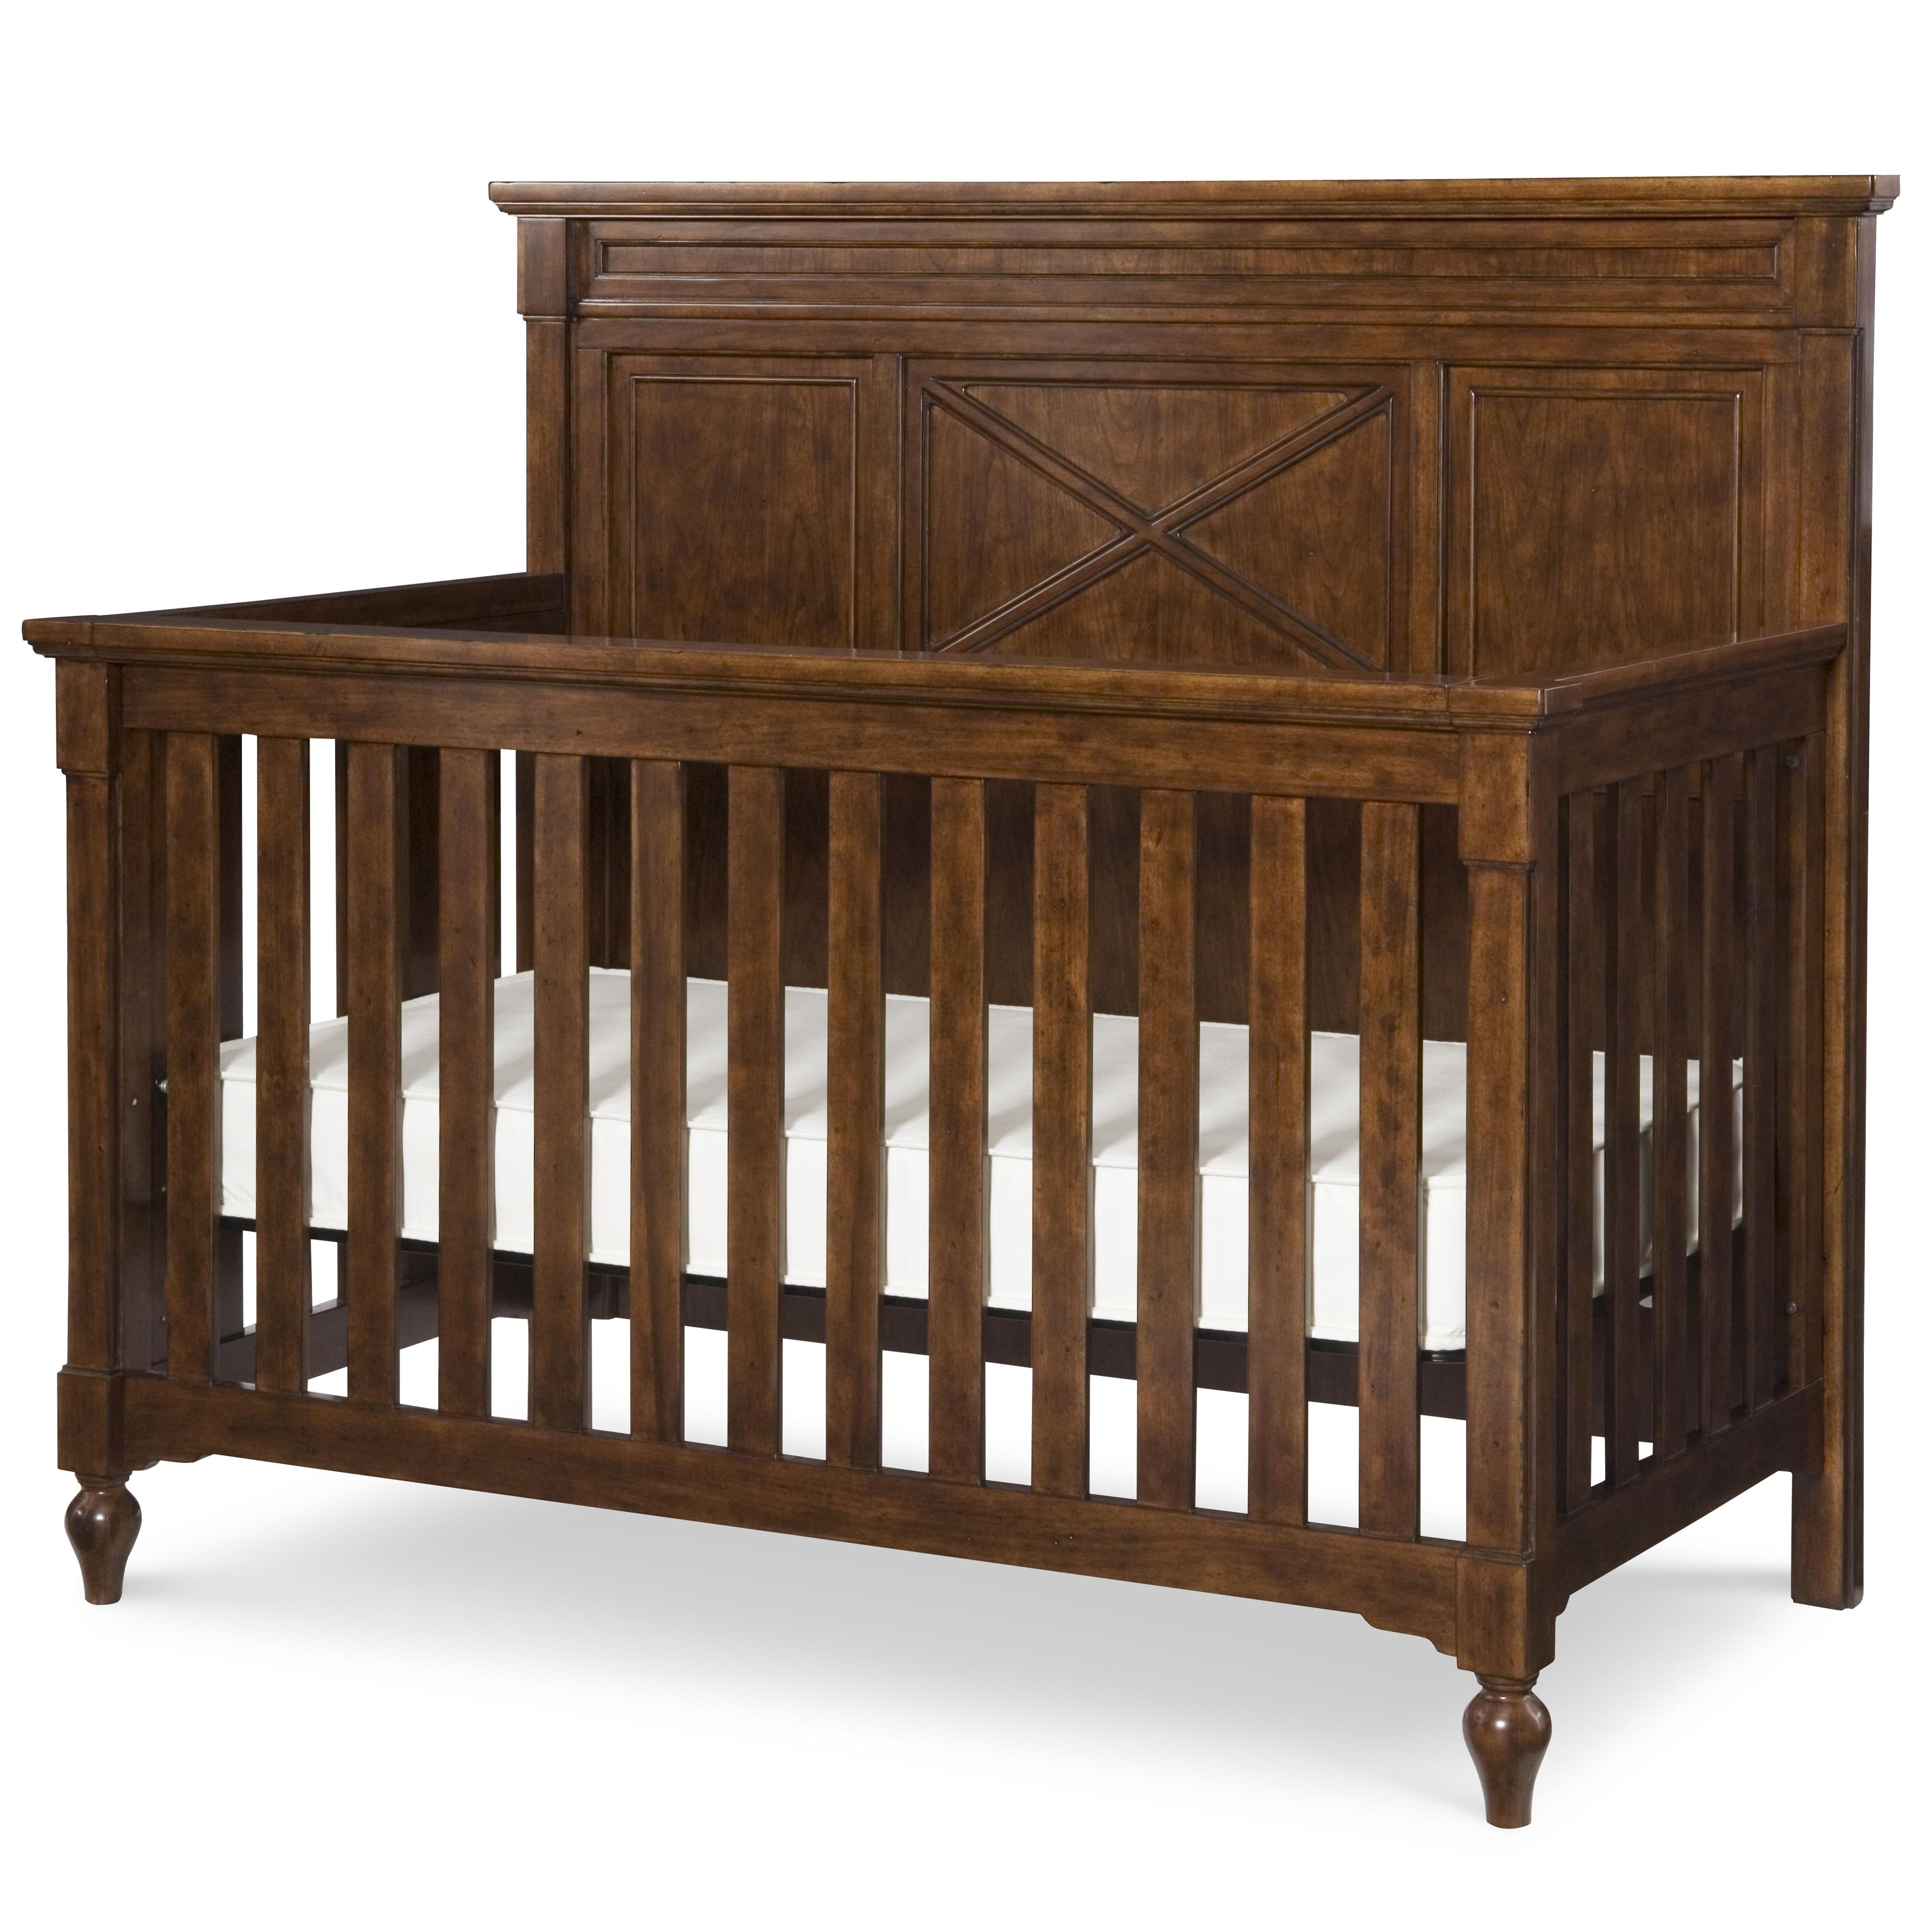 Design Corner Cribs shop cribs wolf and gardiner furniture grow with me convertible crib